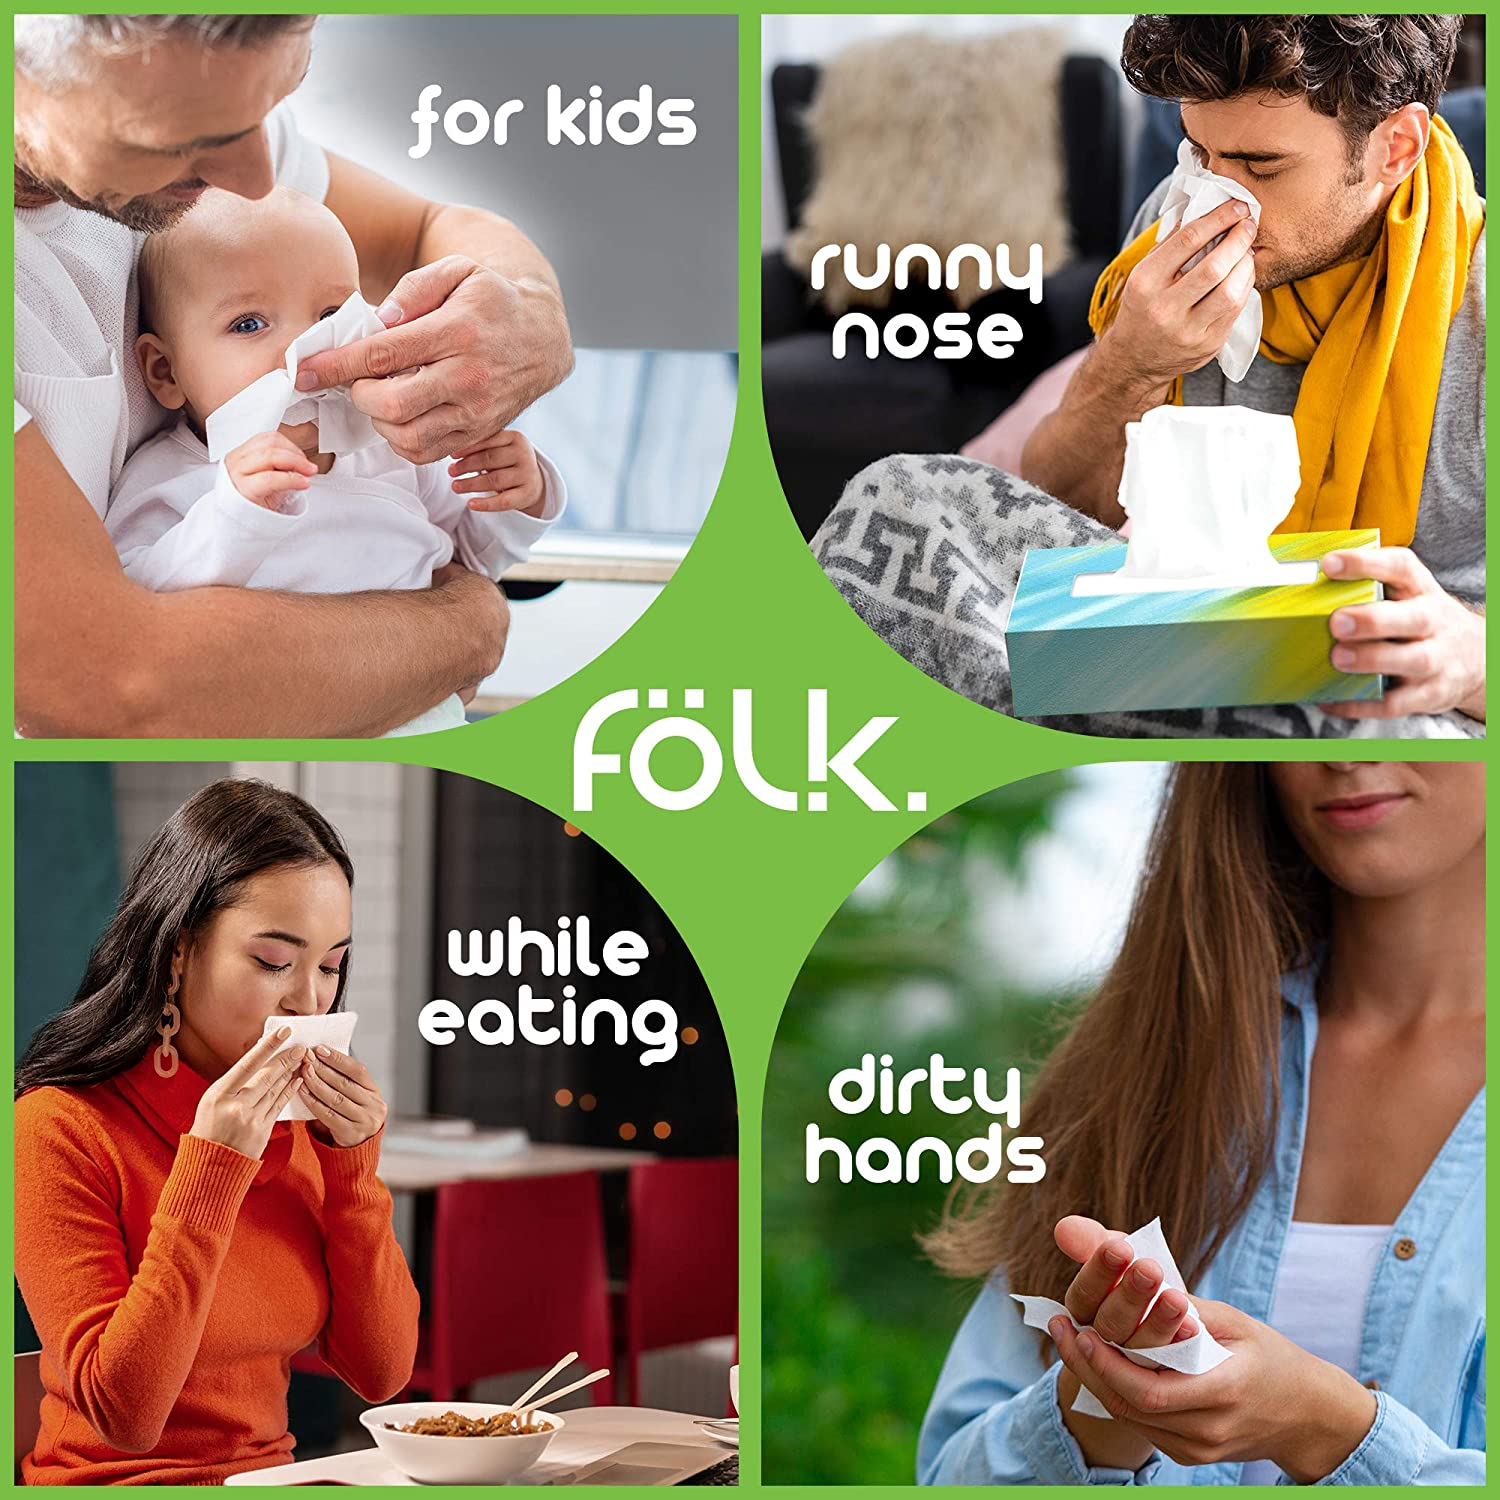 100/% Natural Cellulose Office White Design FOLK Facial Tissue Paper Bulk Ultra Soft and Absorbent 1200-2 Plies per Flat Box 12 cartons x 100 Sheets Perfect for Family Car Home Hypoallergenic